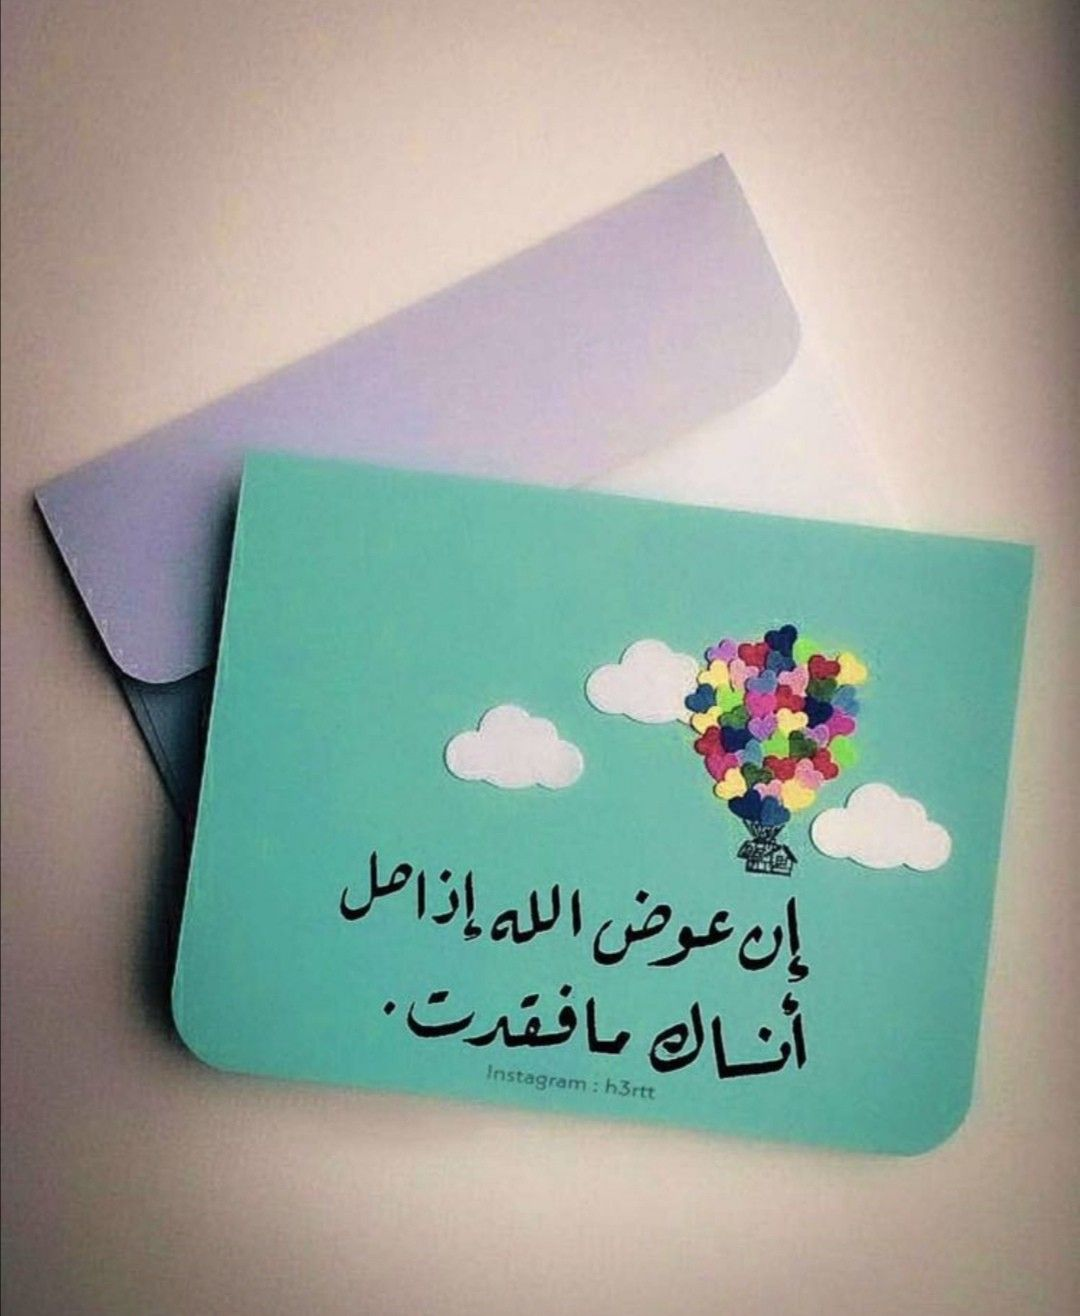 Pin By Batool269 On خطاطون Islamic Love Quotes Study Motivation Inspiration Postive Quotes